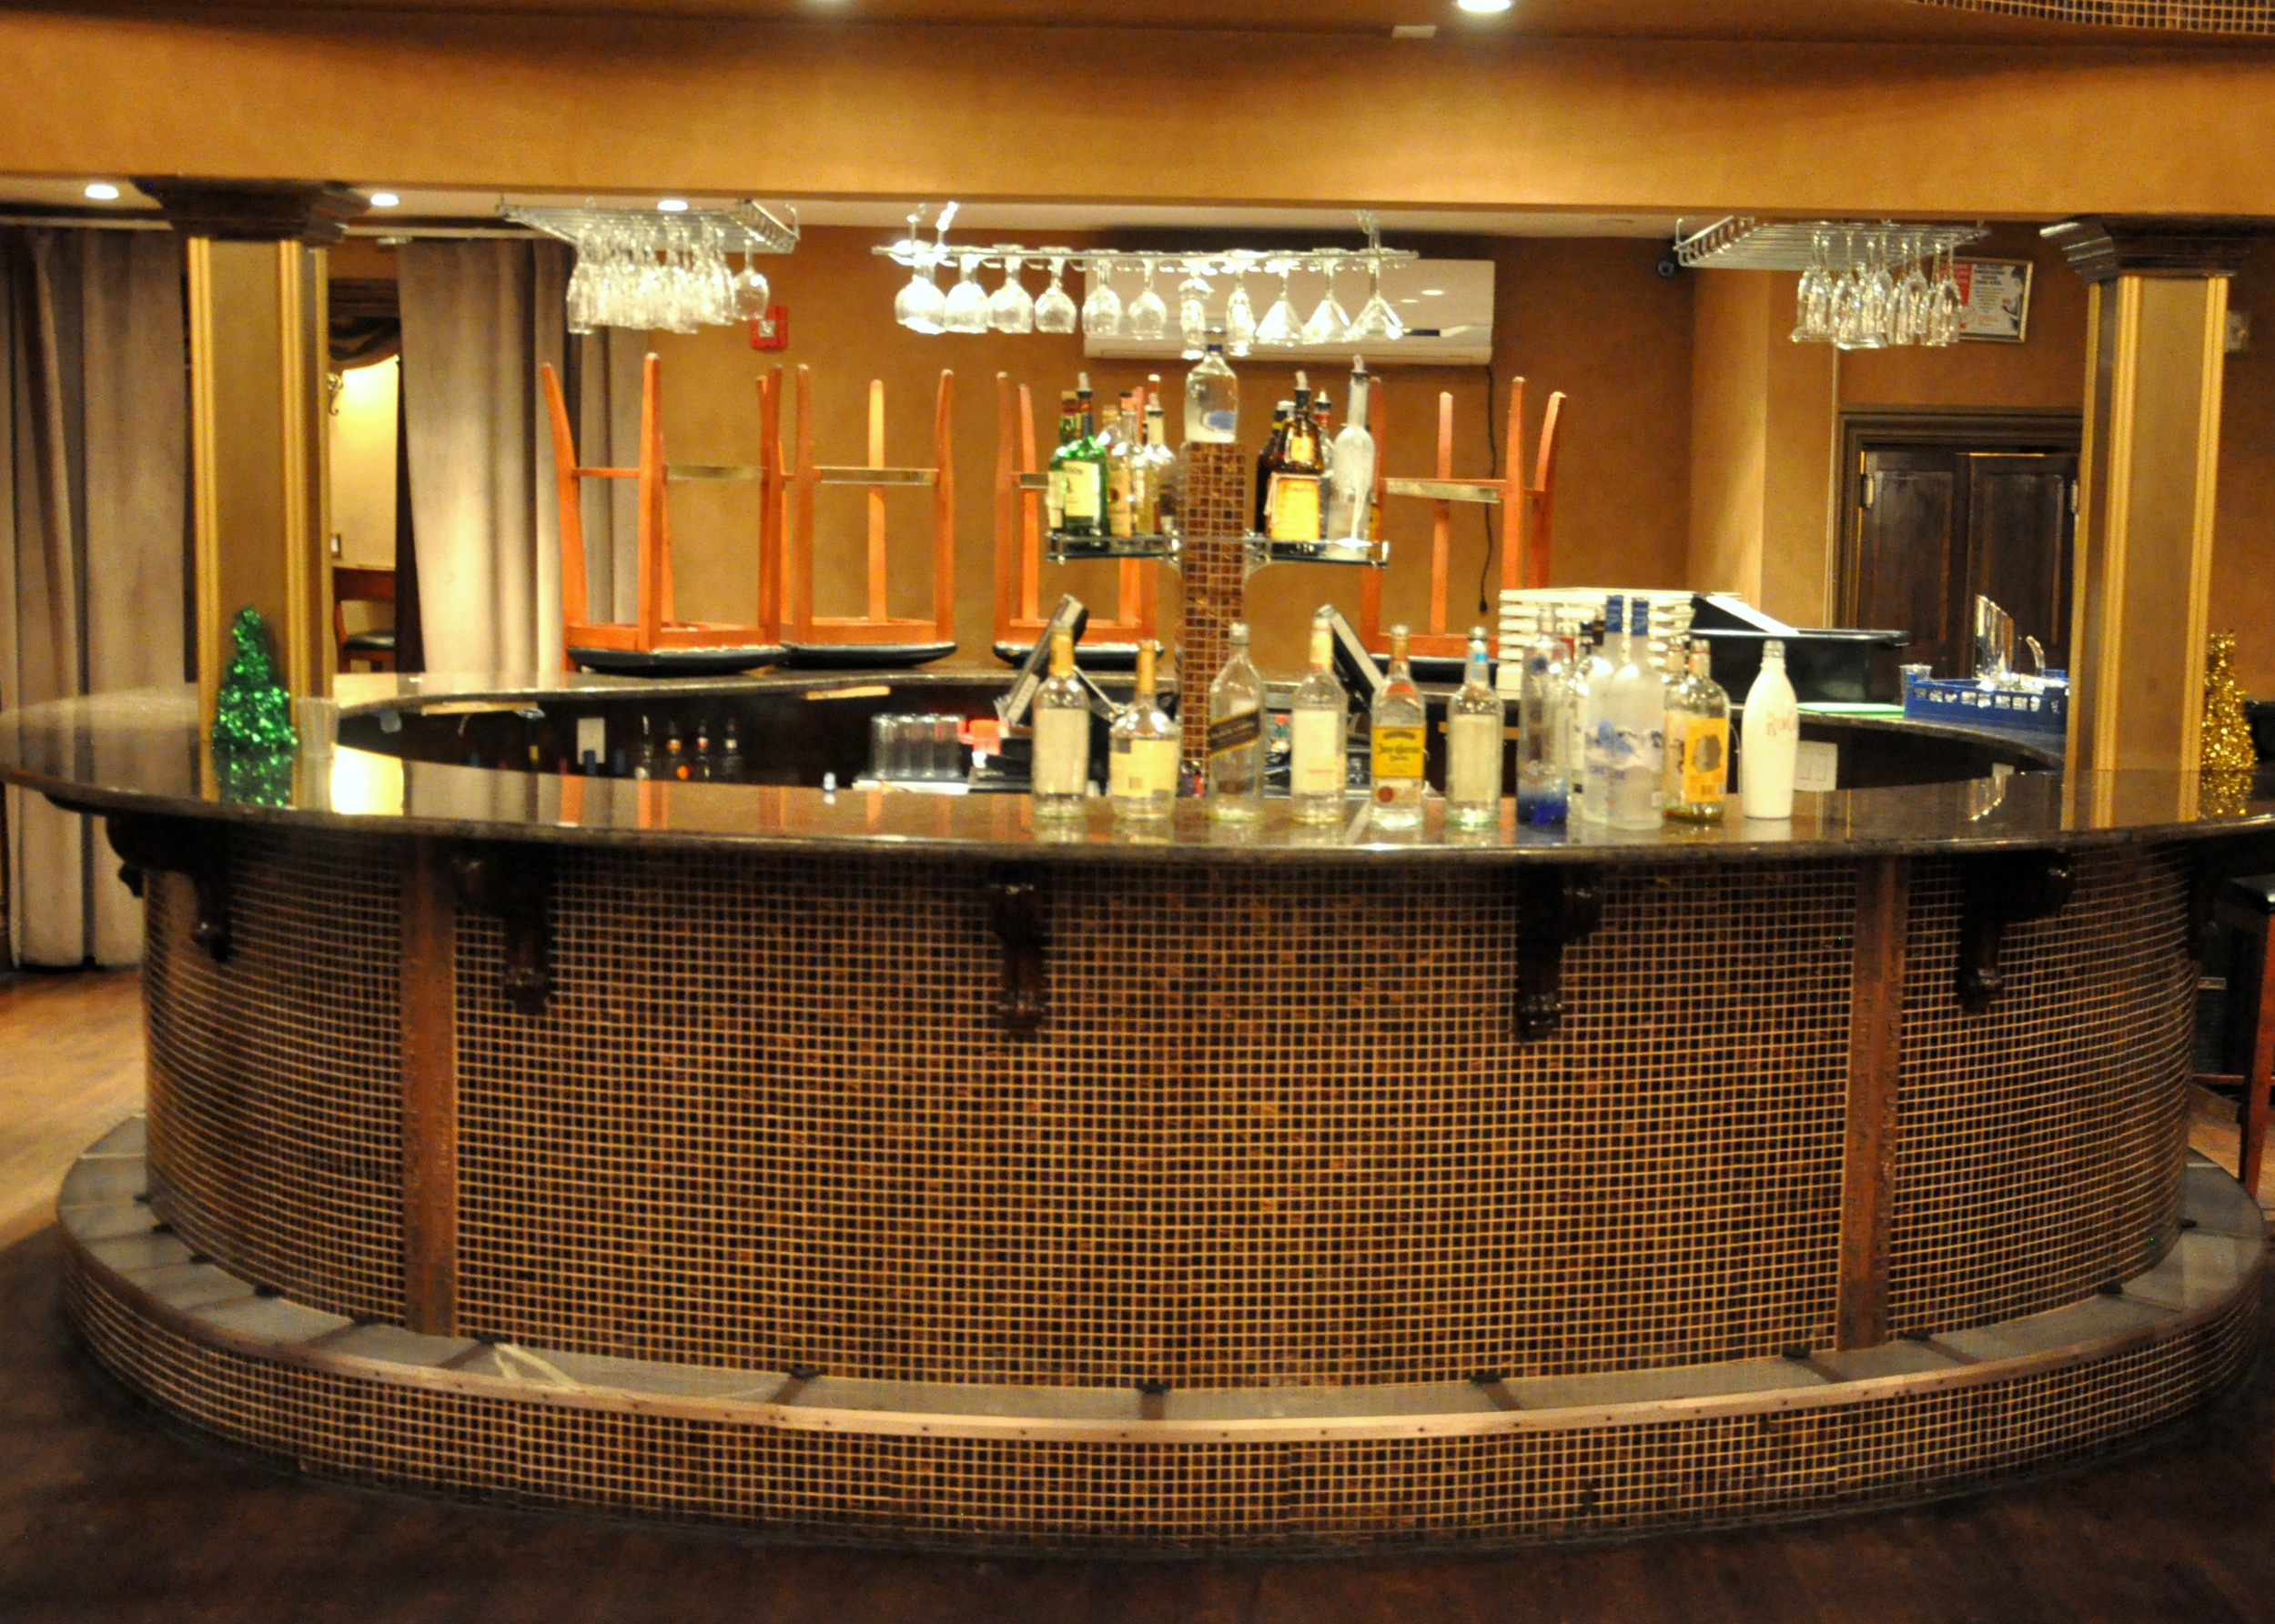 Finished Tiled Dining room bar